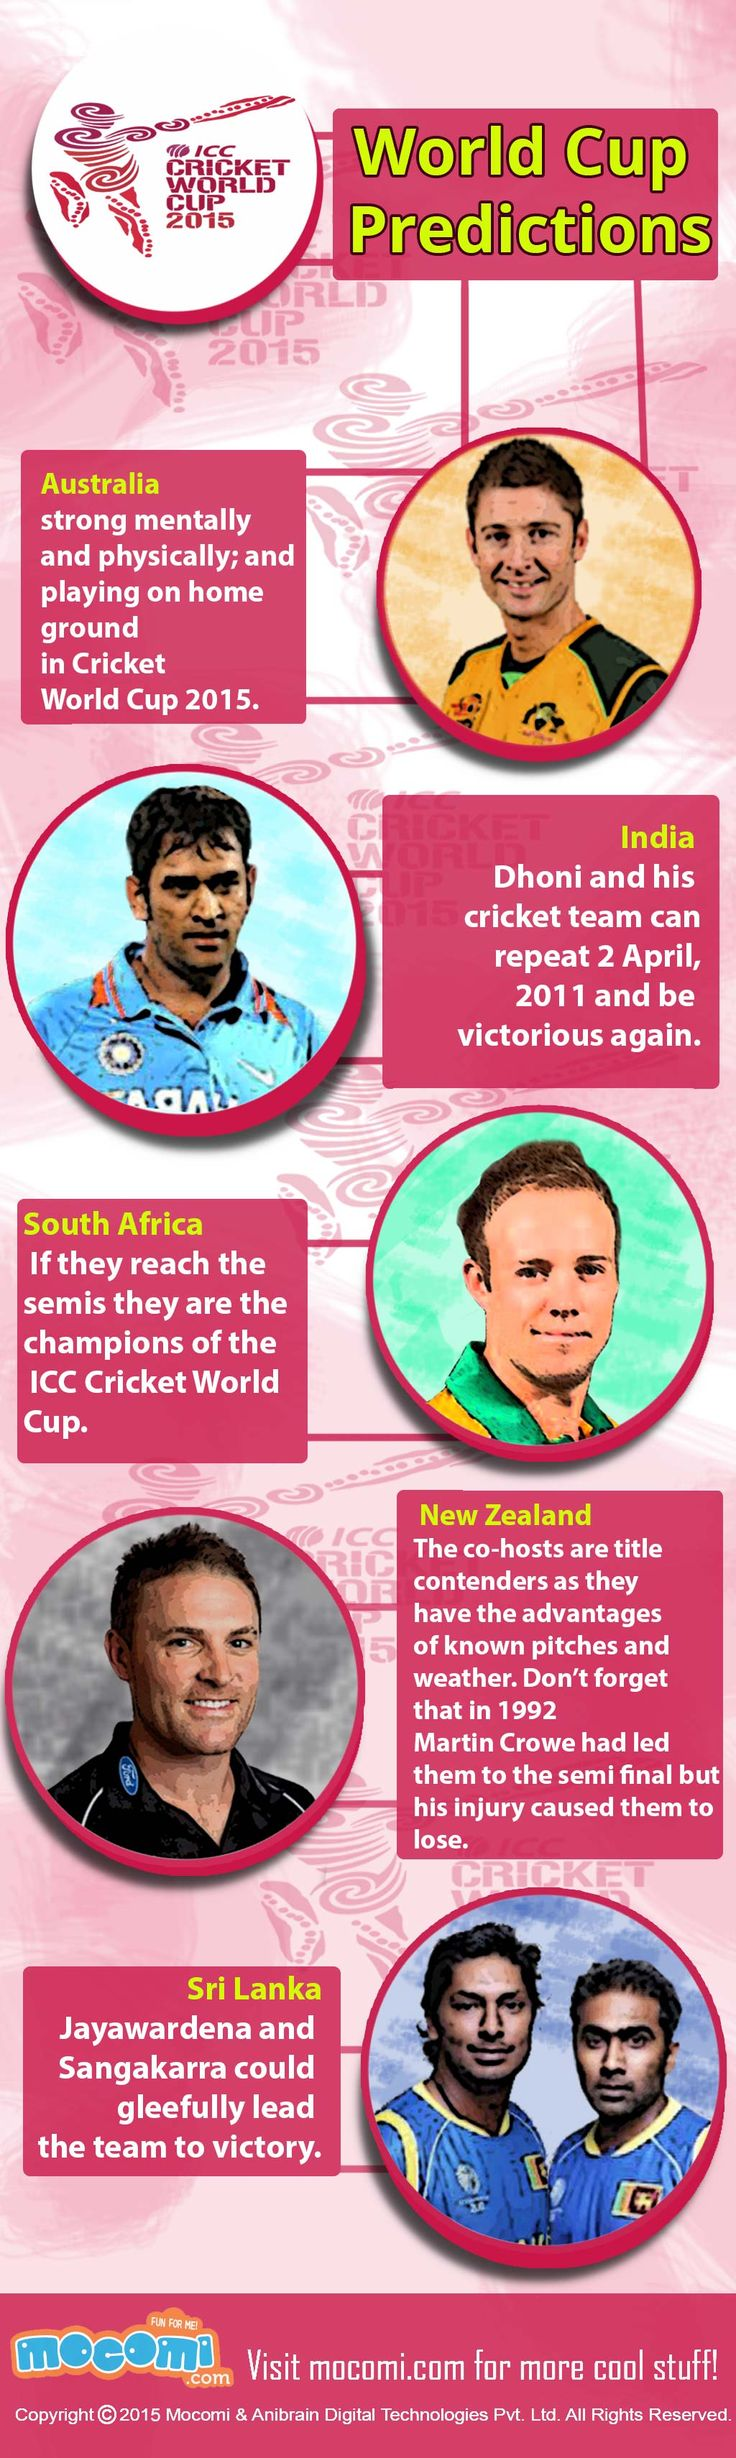 Who do you think will win the 2015 Cricket #WorldCup this time? Here's our World Cup #predictions and analysis! Visit Mocomag #Cricket issue http://mocomi.com/issue-33/ for more Cricket stories.